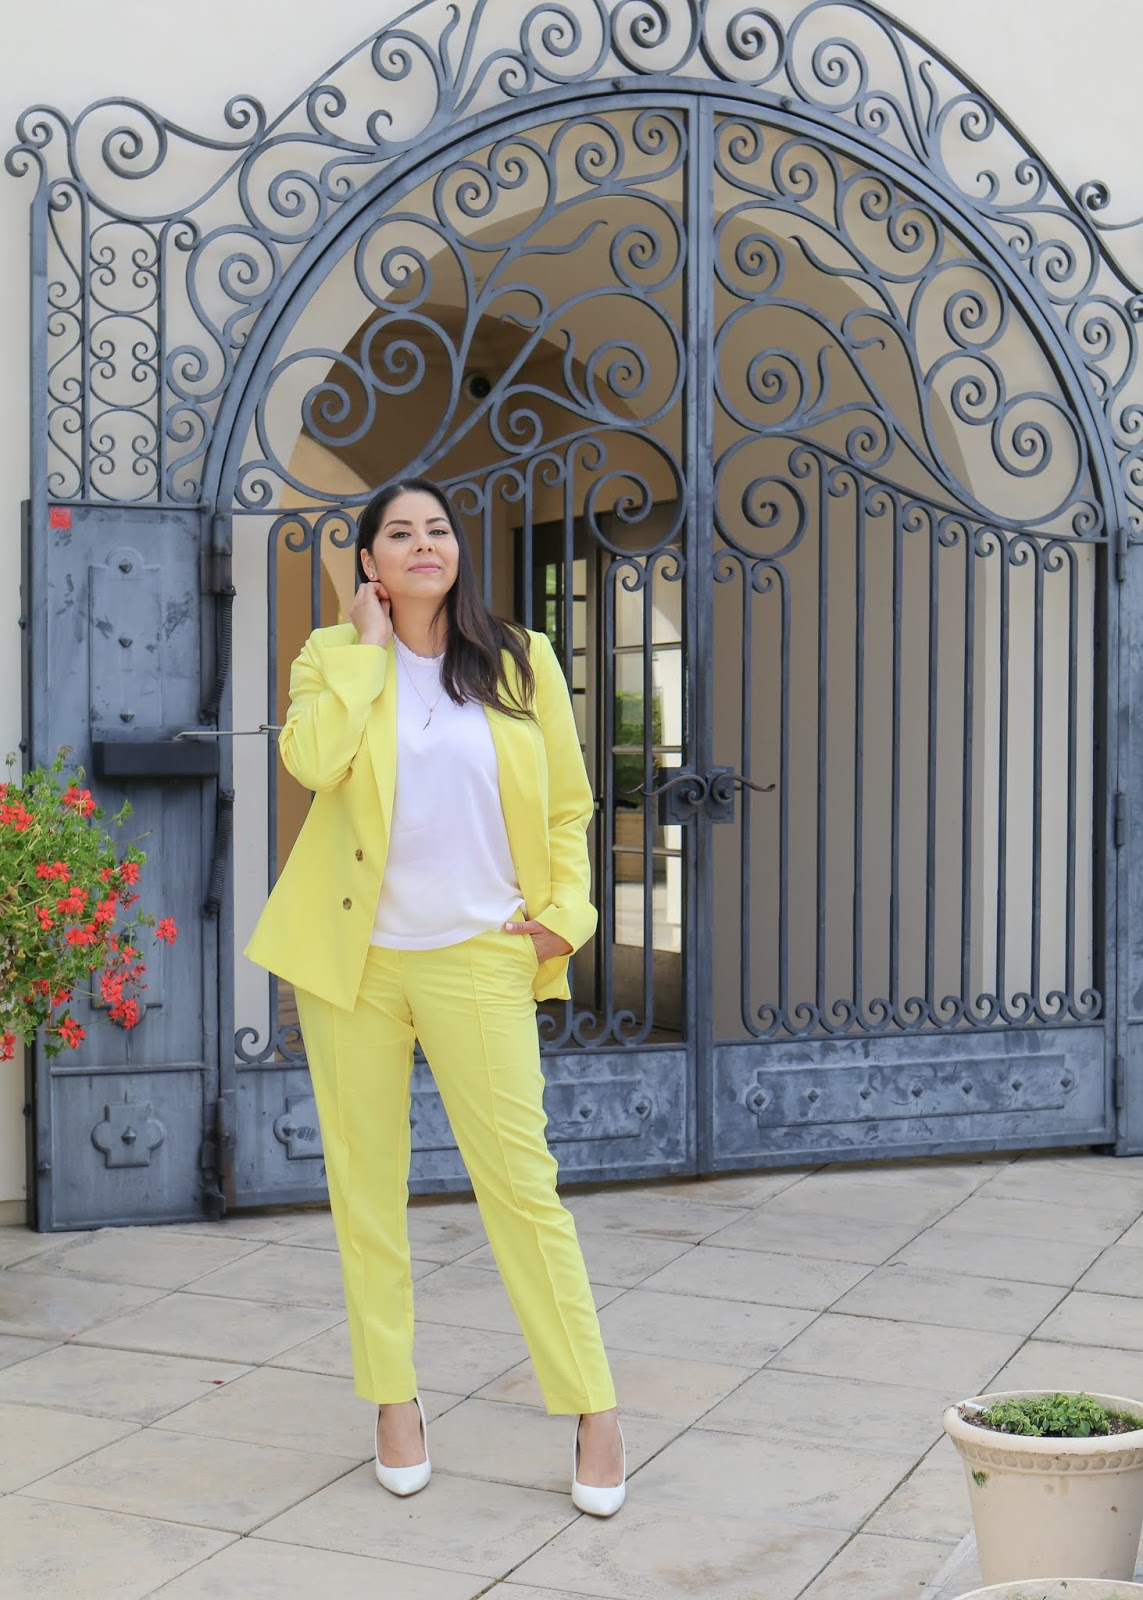 How to wear a yellow suit this spring, yellow power suit outfit